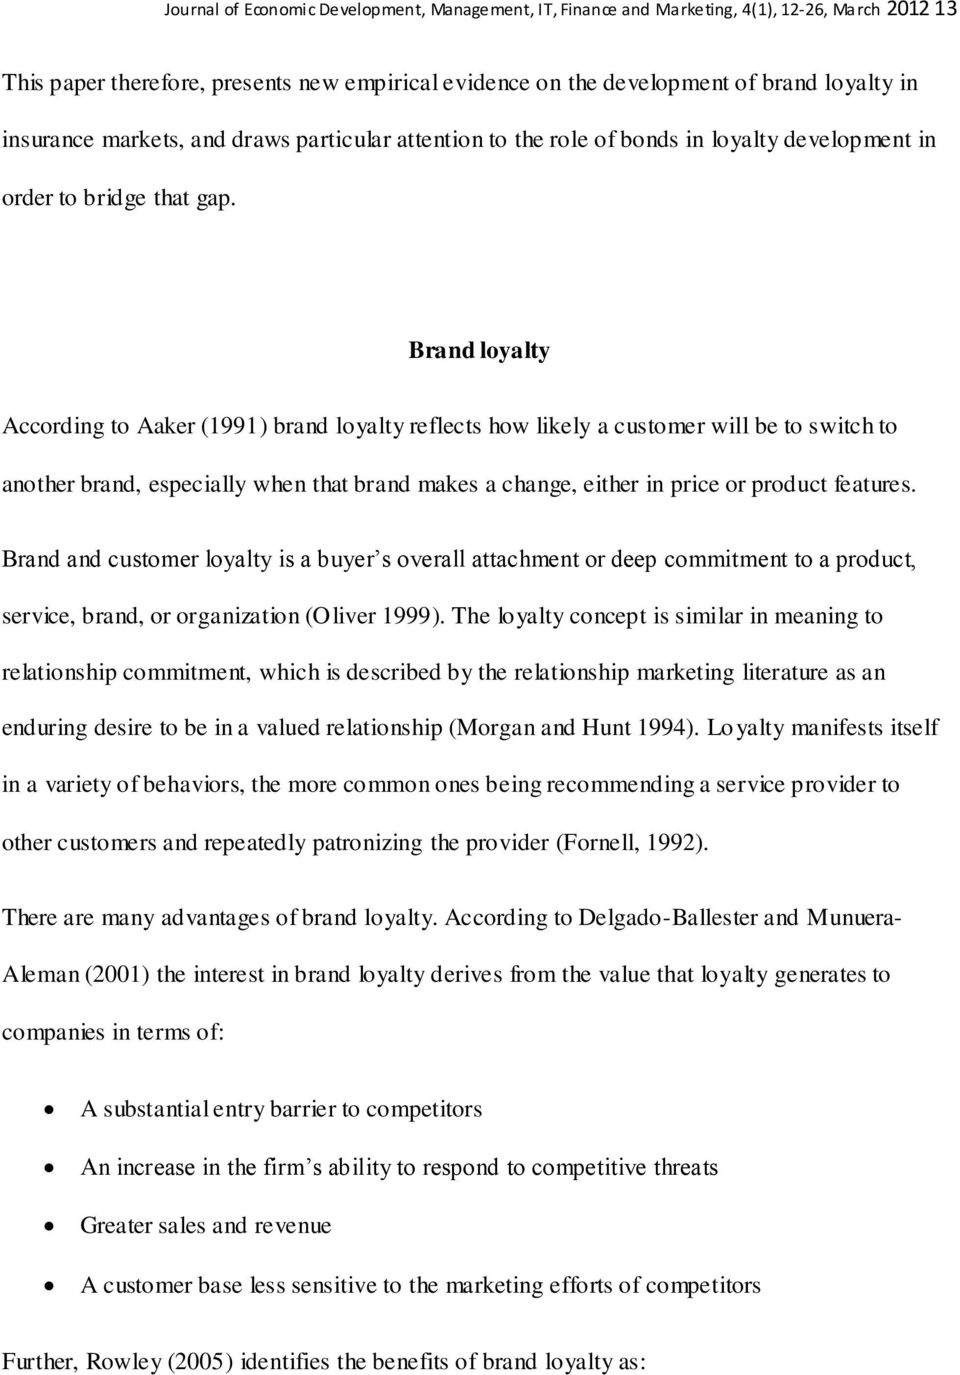 Brand loyalty According to Aaker (1991) brand loyalty reflects how likely a customer will be to switch to another brand, especially when that brand makes a change, either in price or product features.